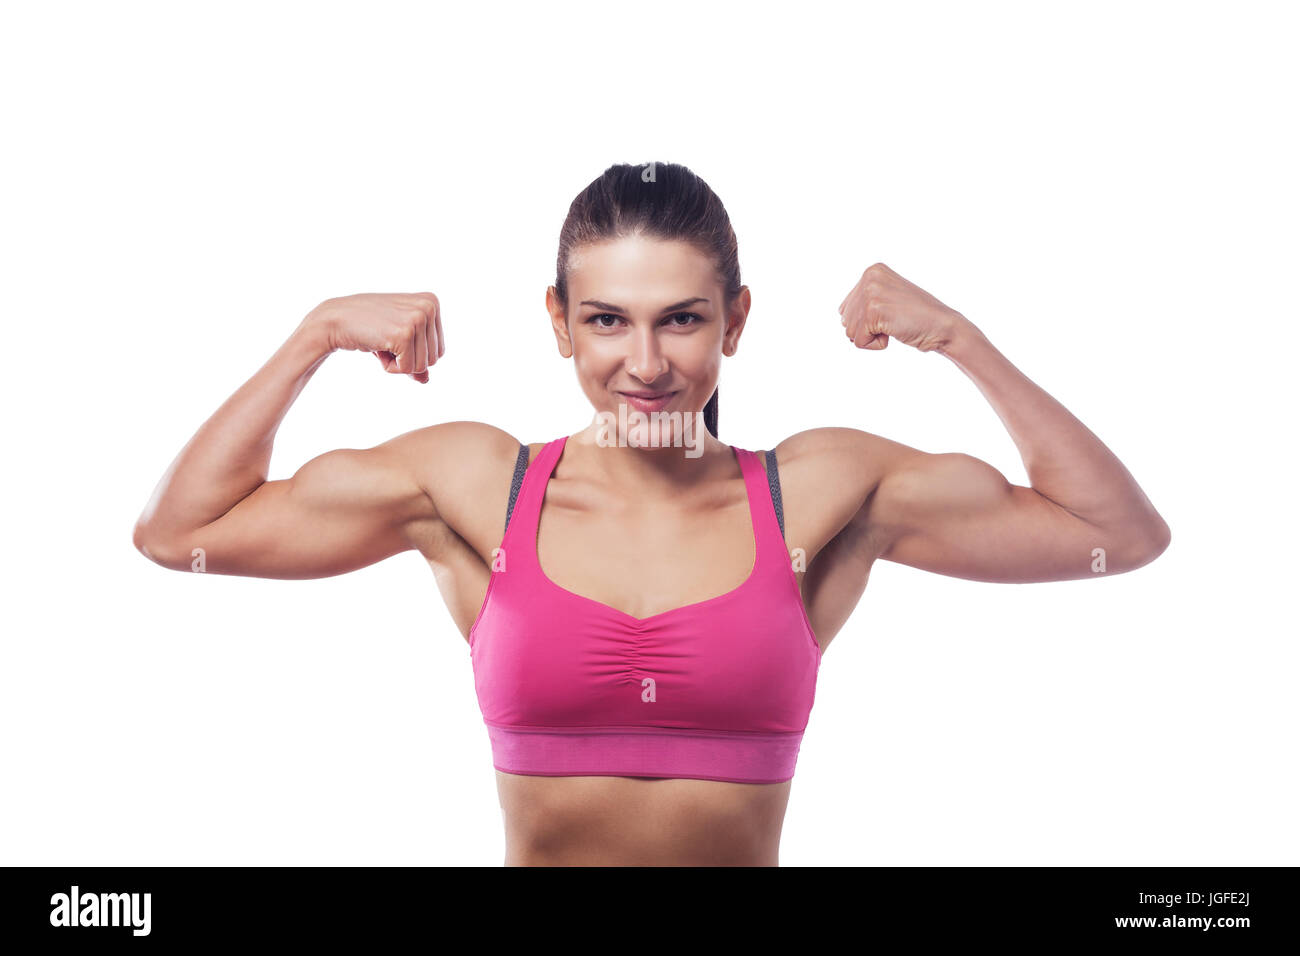 6c23eb4fdc402 A woman in pink sports clothes shows her bicep. Isolated white background -  Stock Image